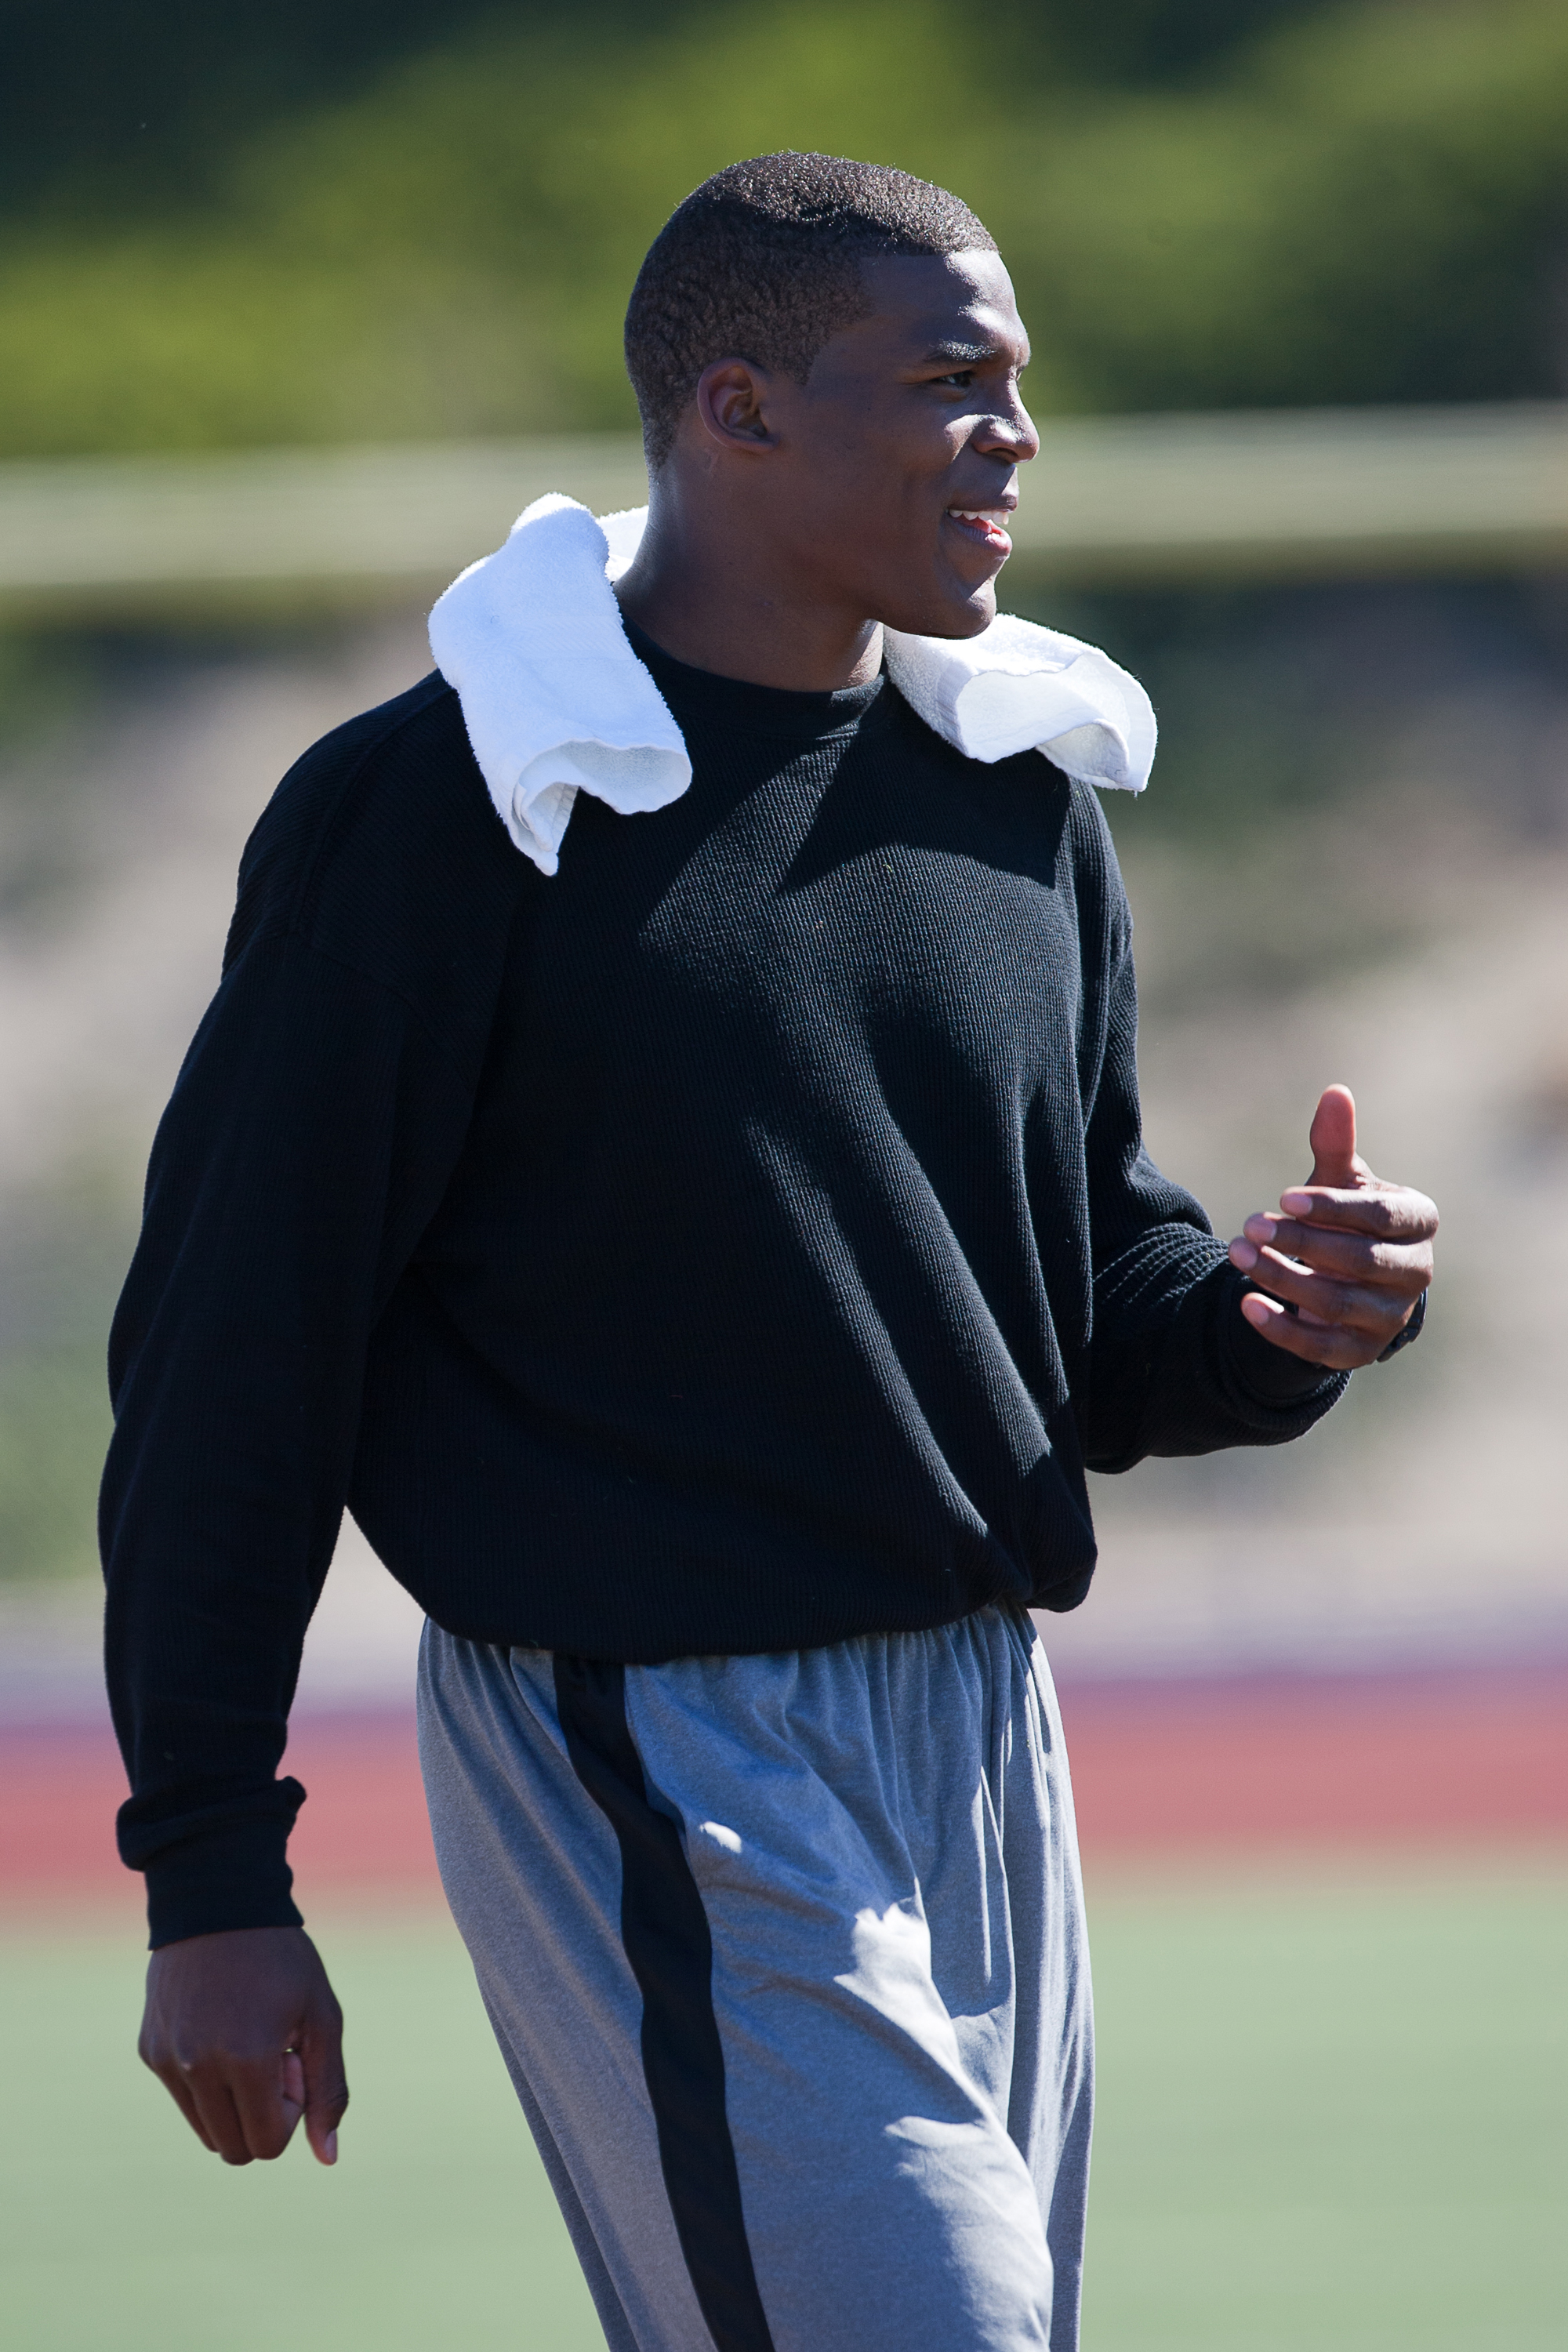 SAN DIEGO, CA - FEBRUARY 10: 2010 Heisman Trophy winning quarterback Cam Newton of Auburn walks off the fiels after his workout routine for the media at Cathedral High School's sports stadium on February 10, 2011 in San Diego, California. (Photo by Kent H